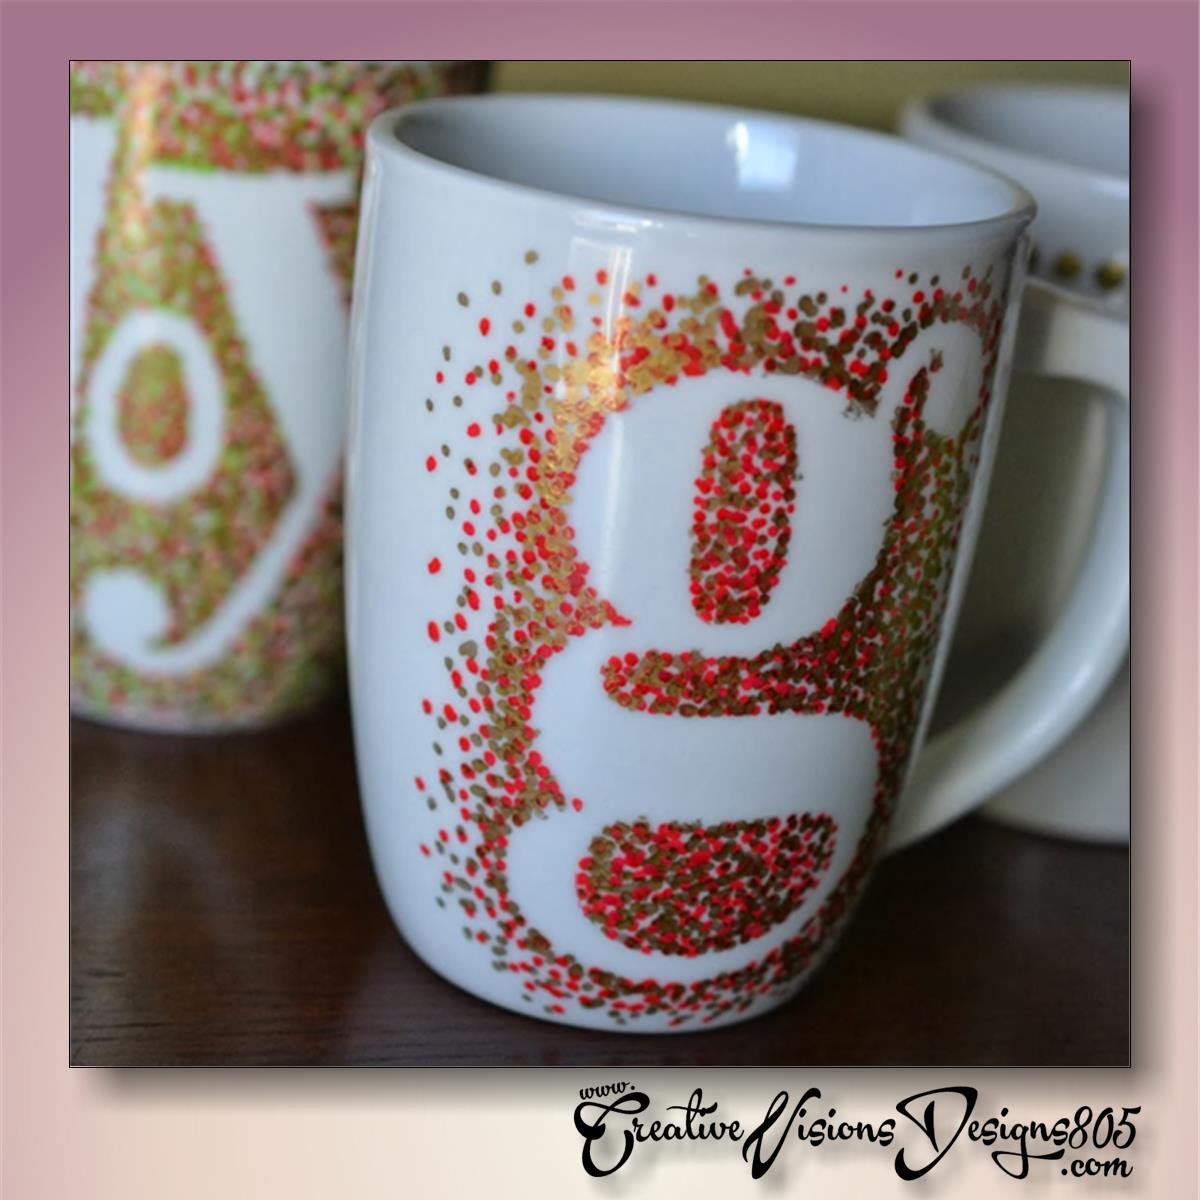 POLKA DOTS INITIAL SHILOUETTE - hand decorated coffee mug